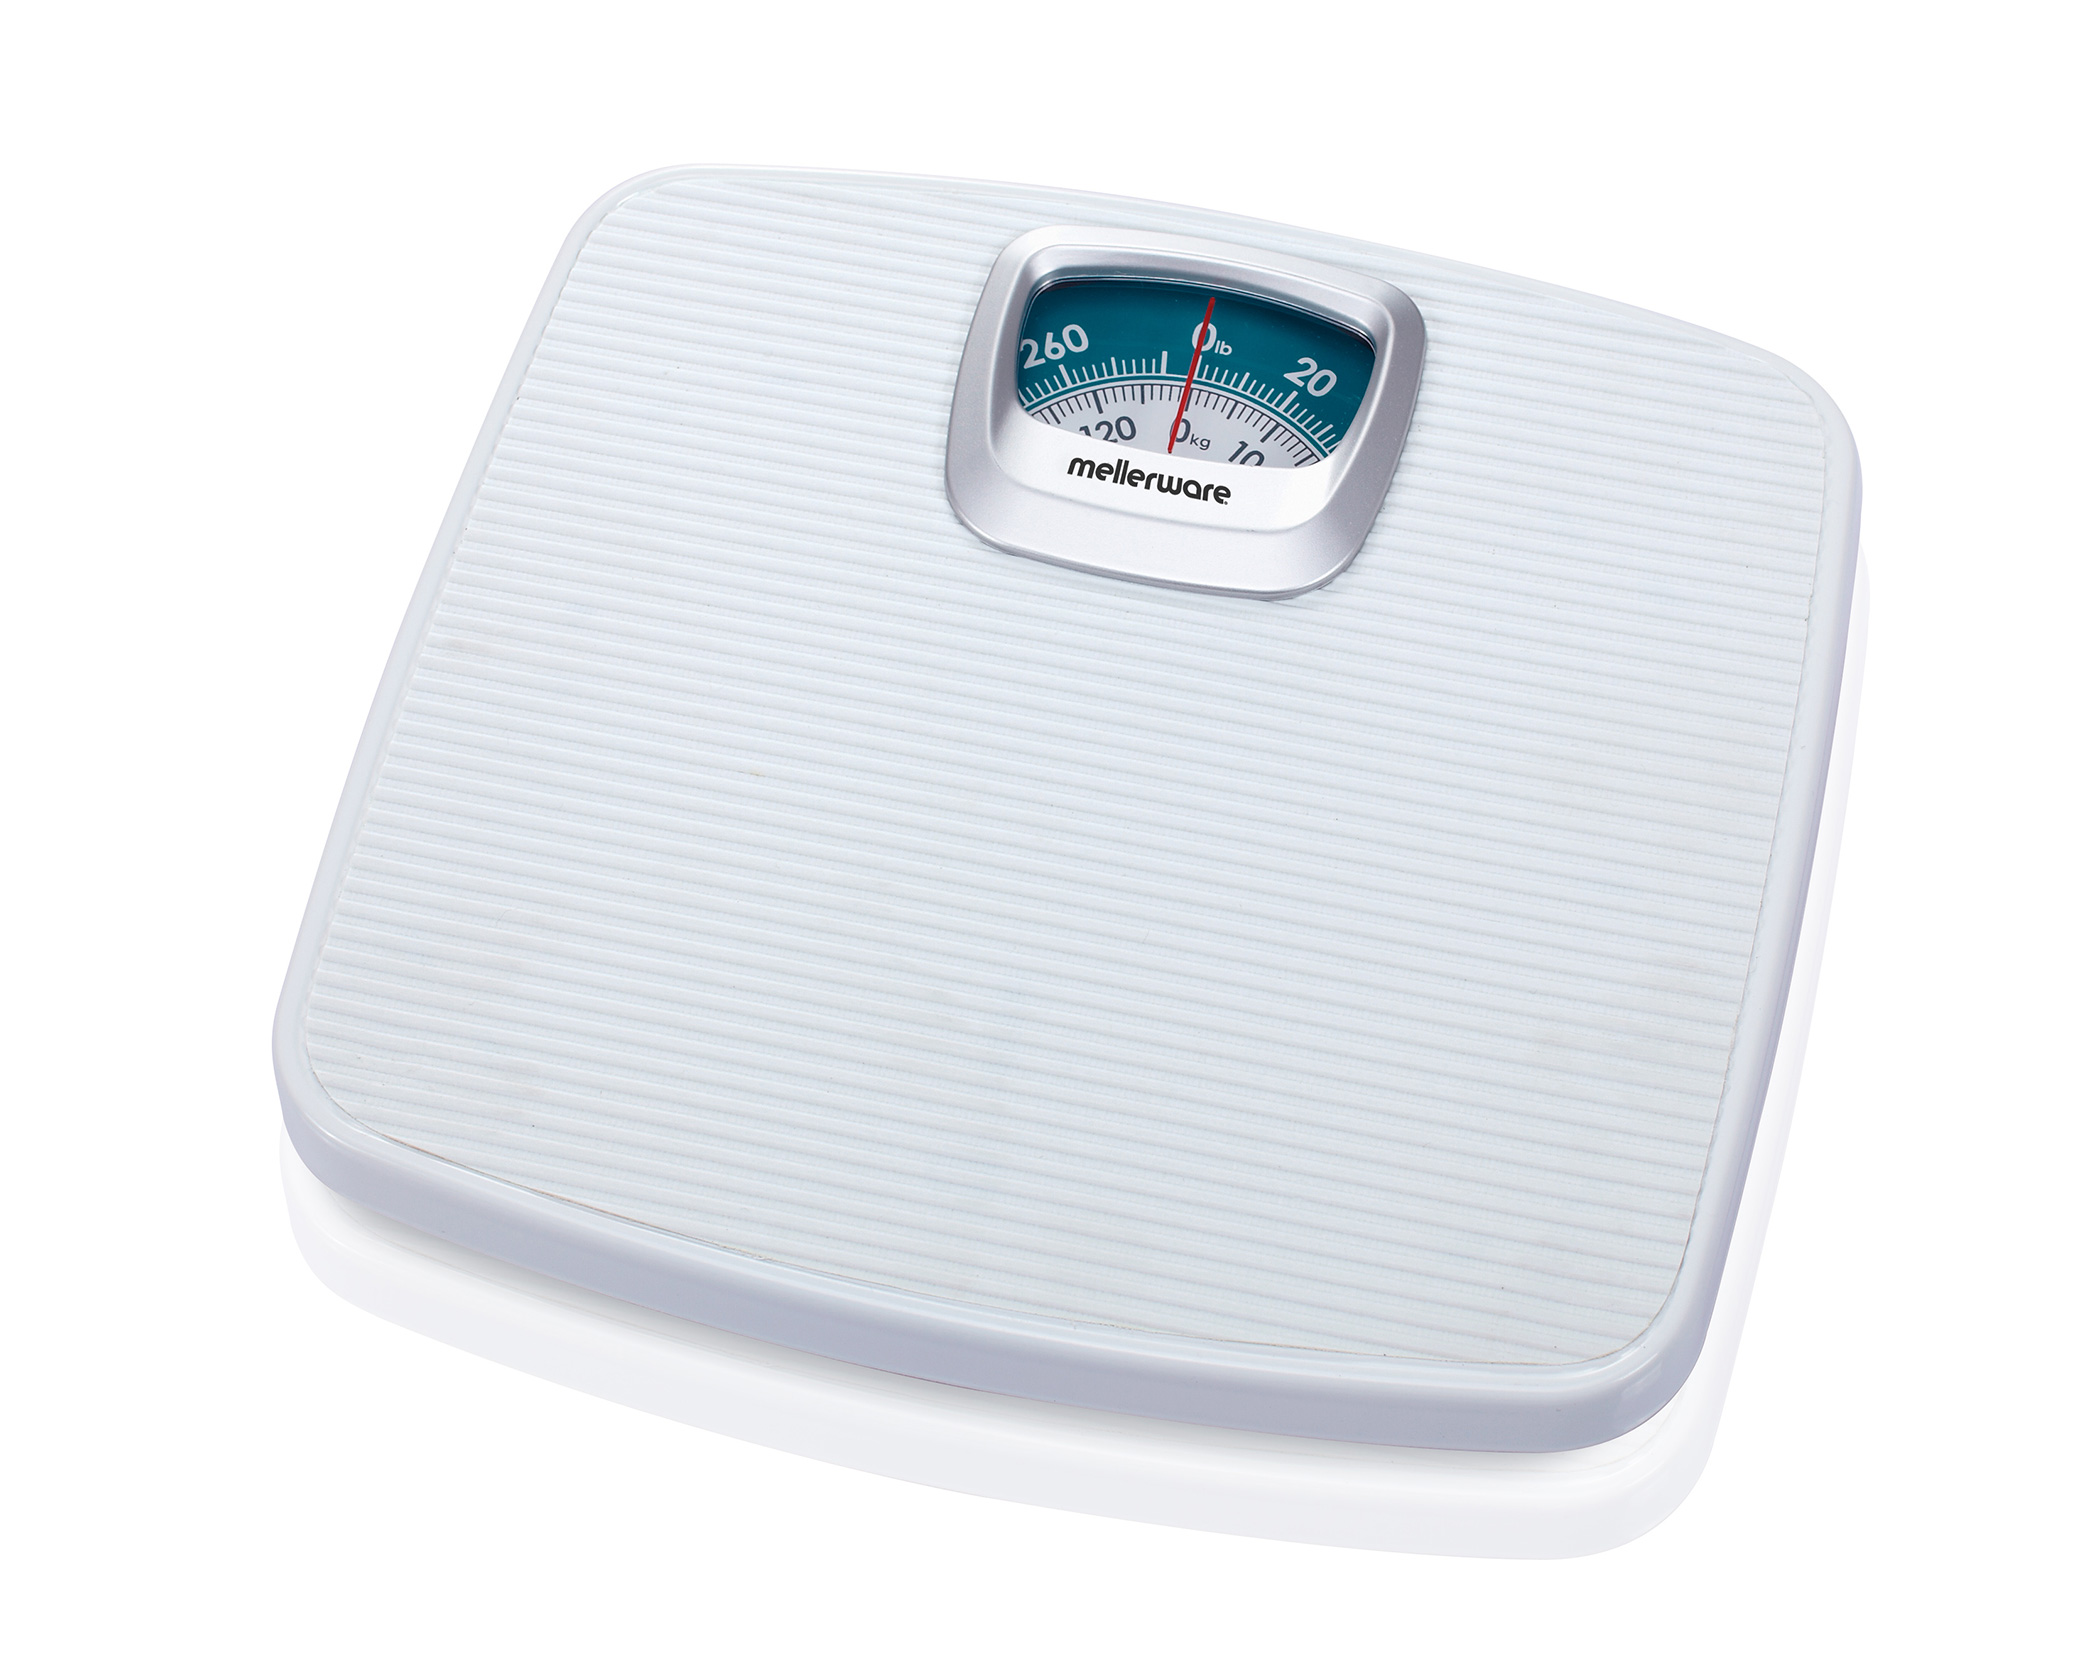 Delicieux Home Products Berlin Mechanical Bathroom Scale · Hover To Zoom